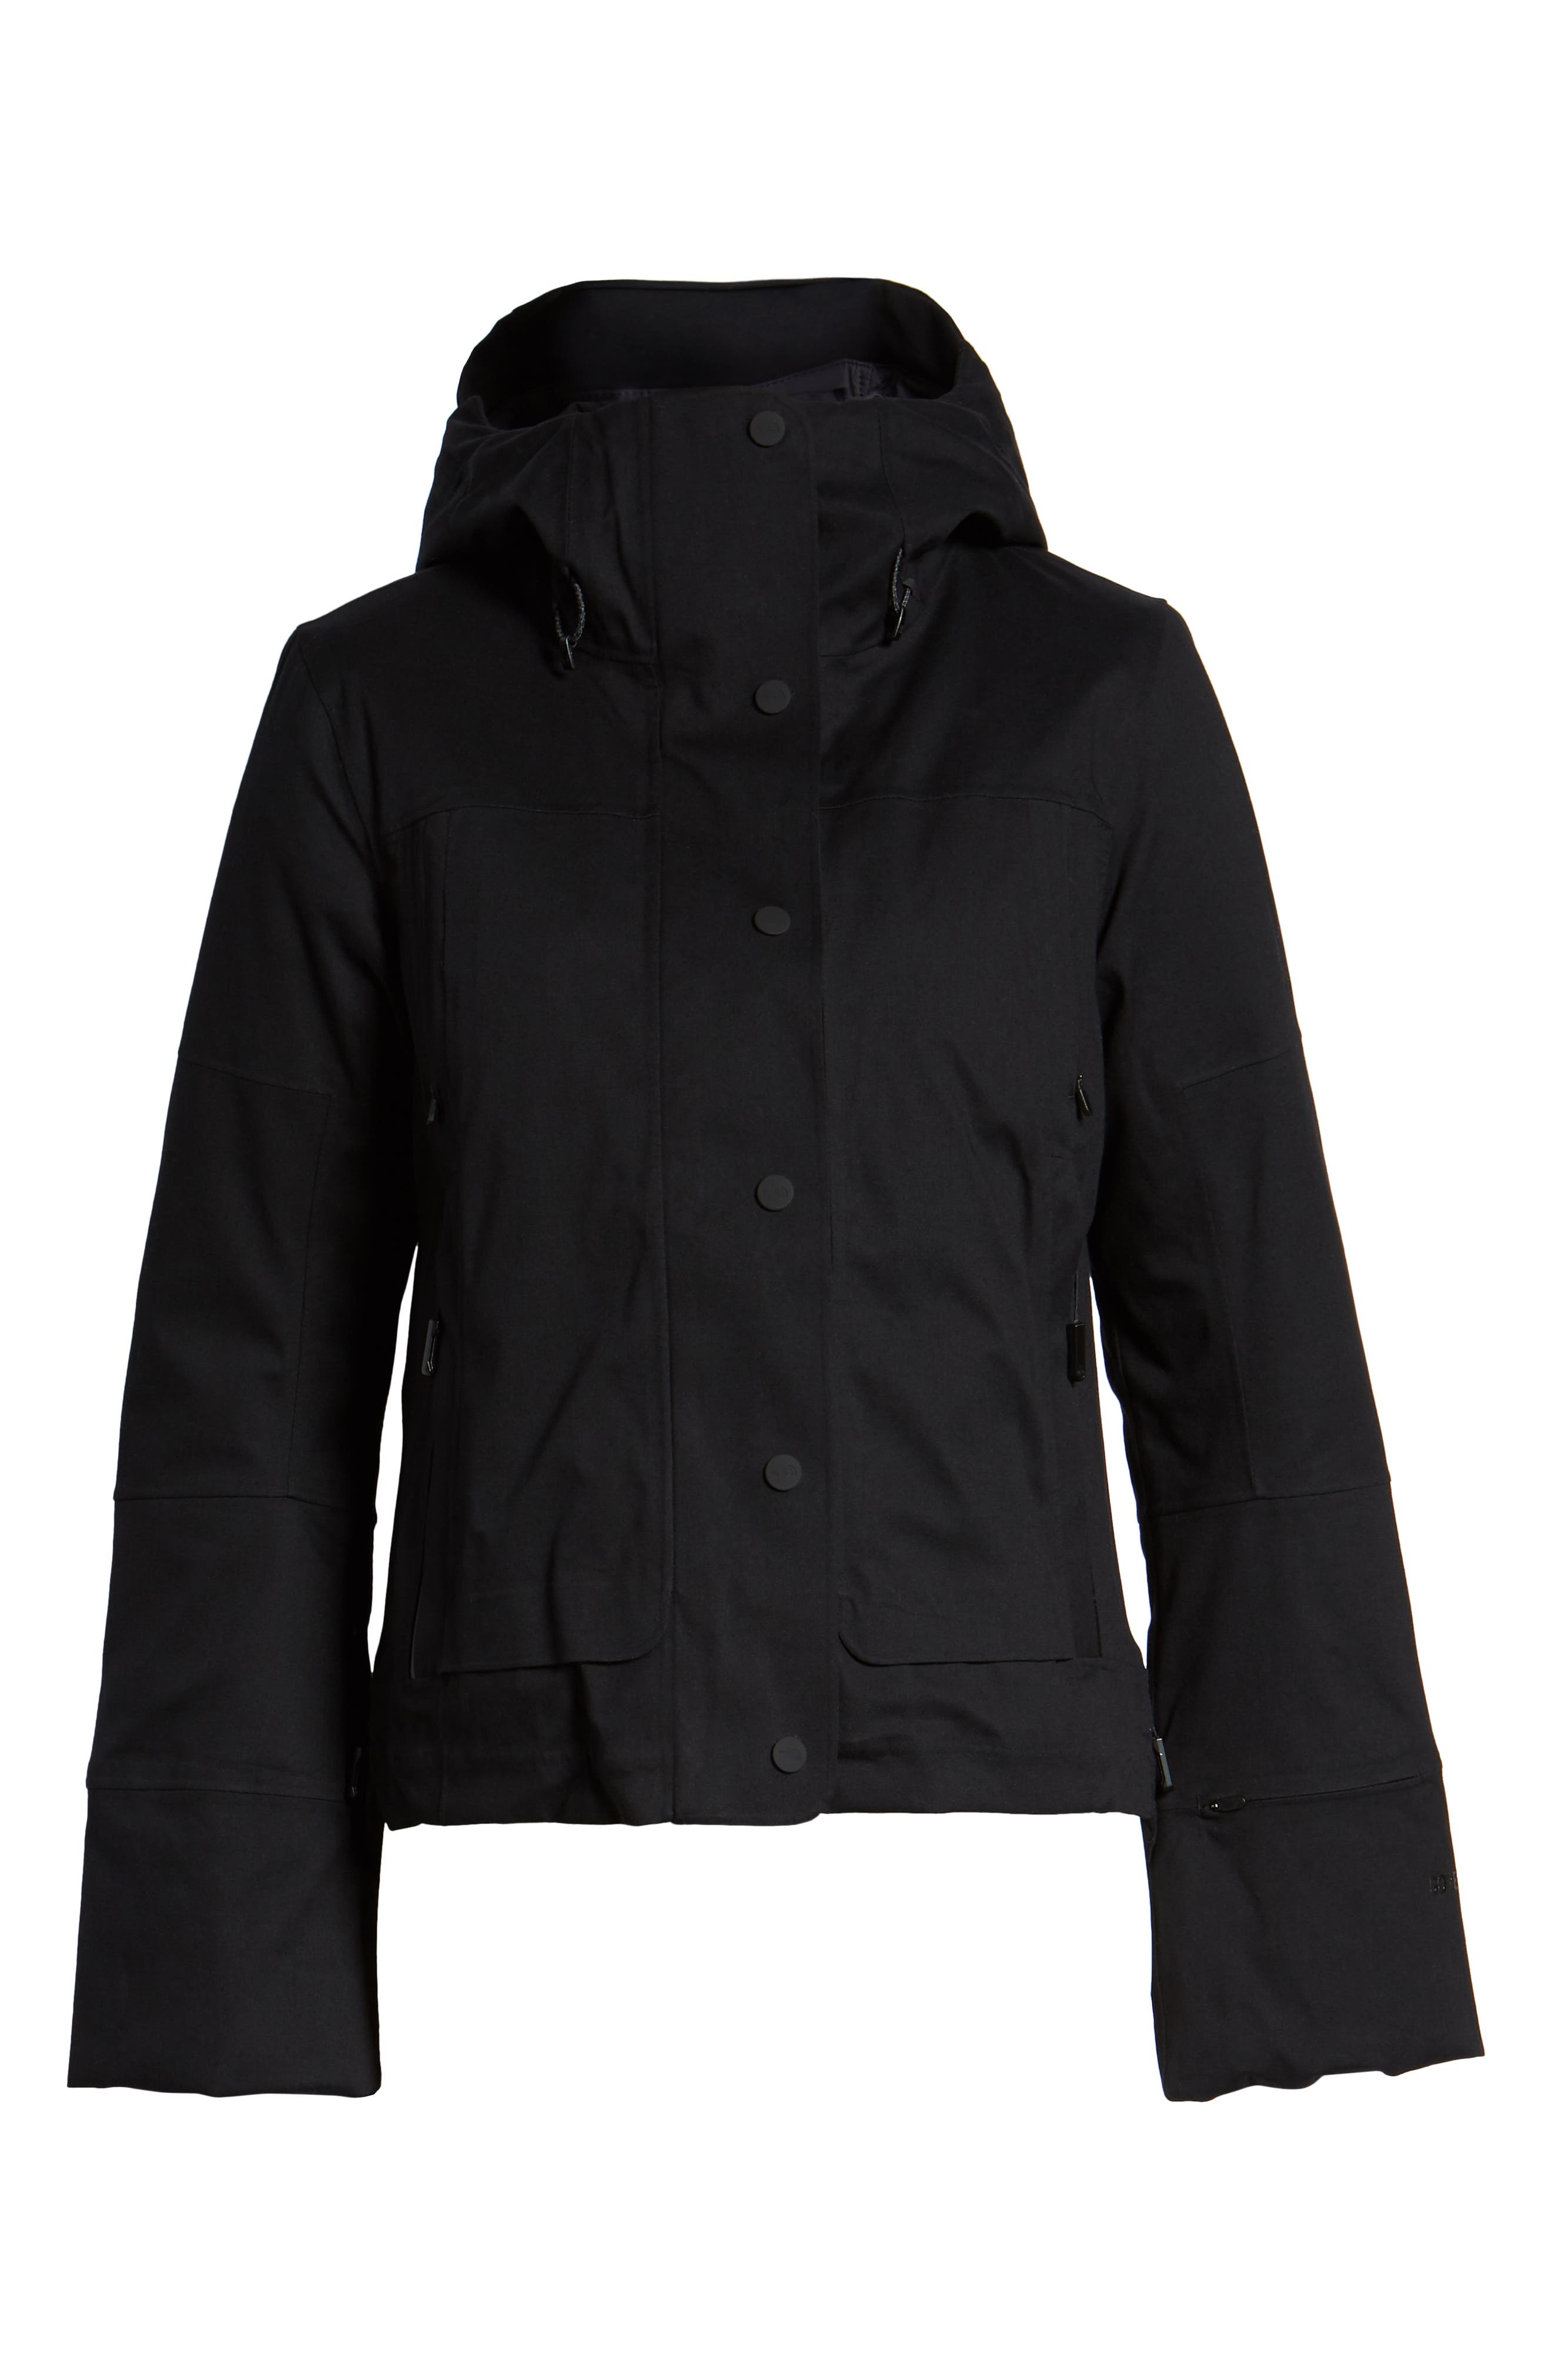 THE NORTH FACE,                             Cryos 2L Mountain Gore-Tex<sup>®</sup> Down Jacket,                             Alternate thumbnail 6, color,                             TNF BLACK